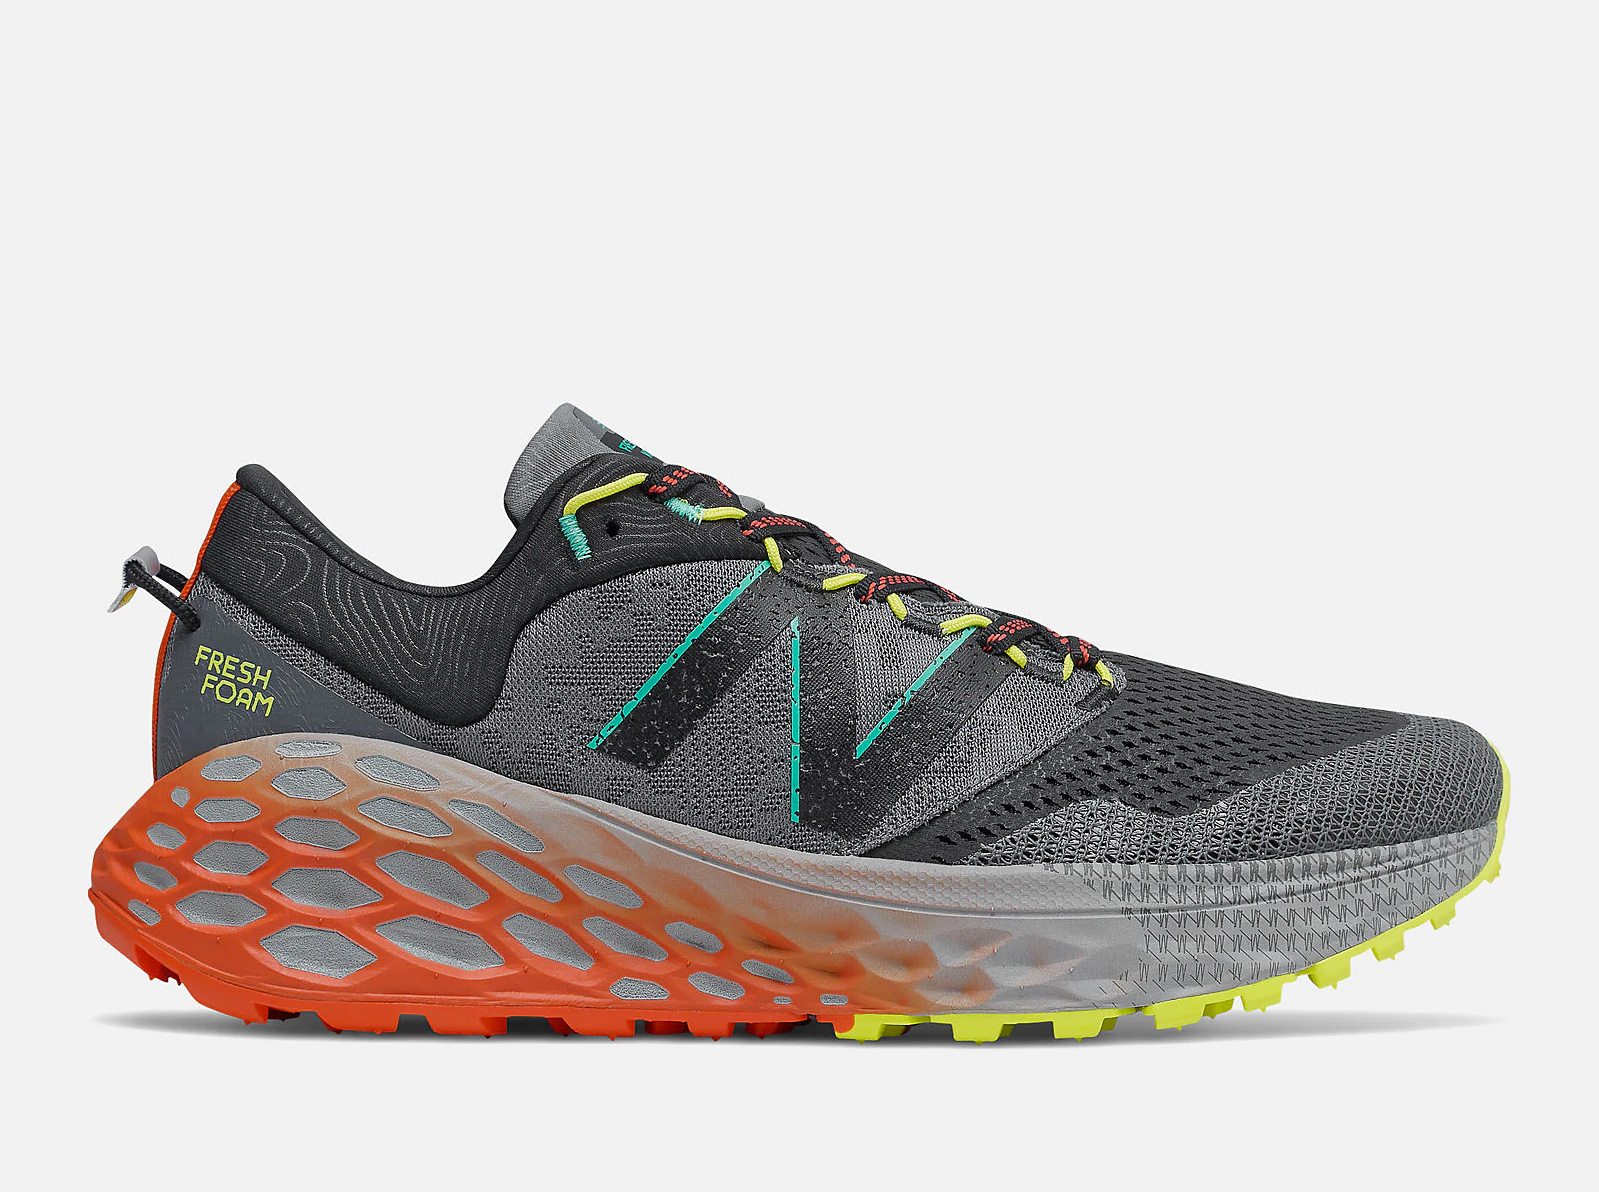 New Balance Stacks Up Comfort with Fresh Foam More Trail v1 at werd.com